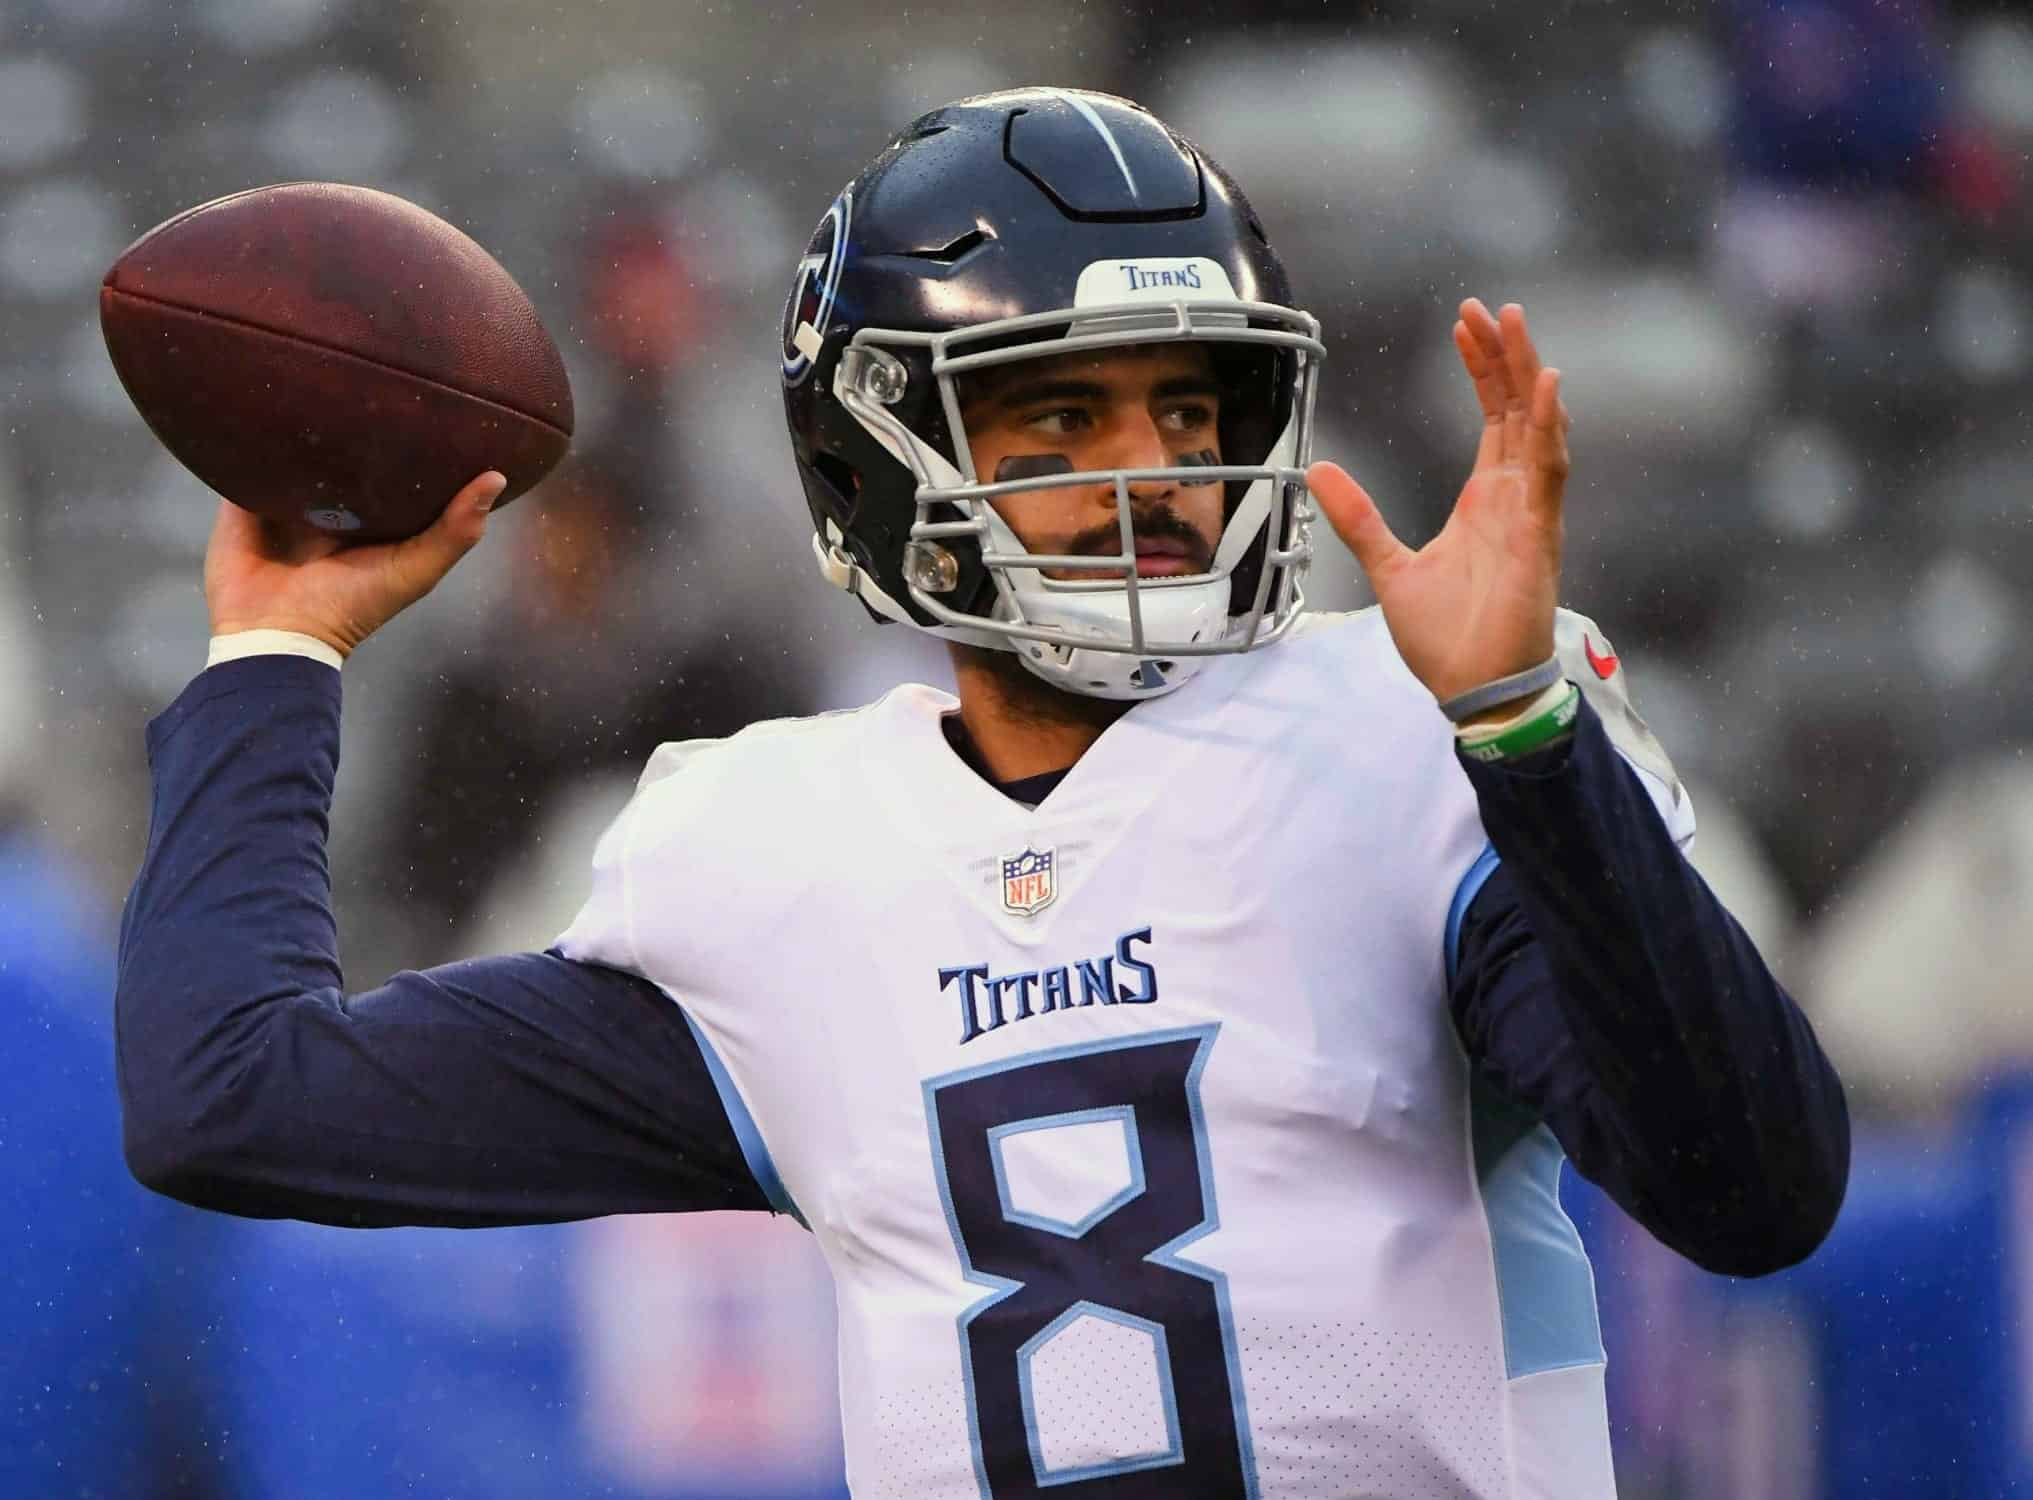 c836c81e Tennessee Titans: In year 5, Marcus Mariota needs breakthrough season